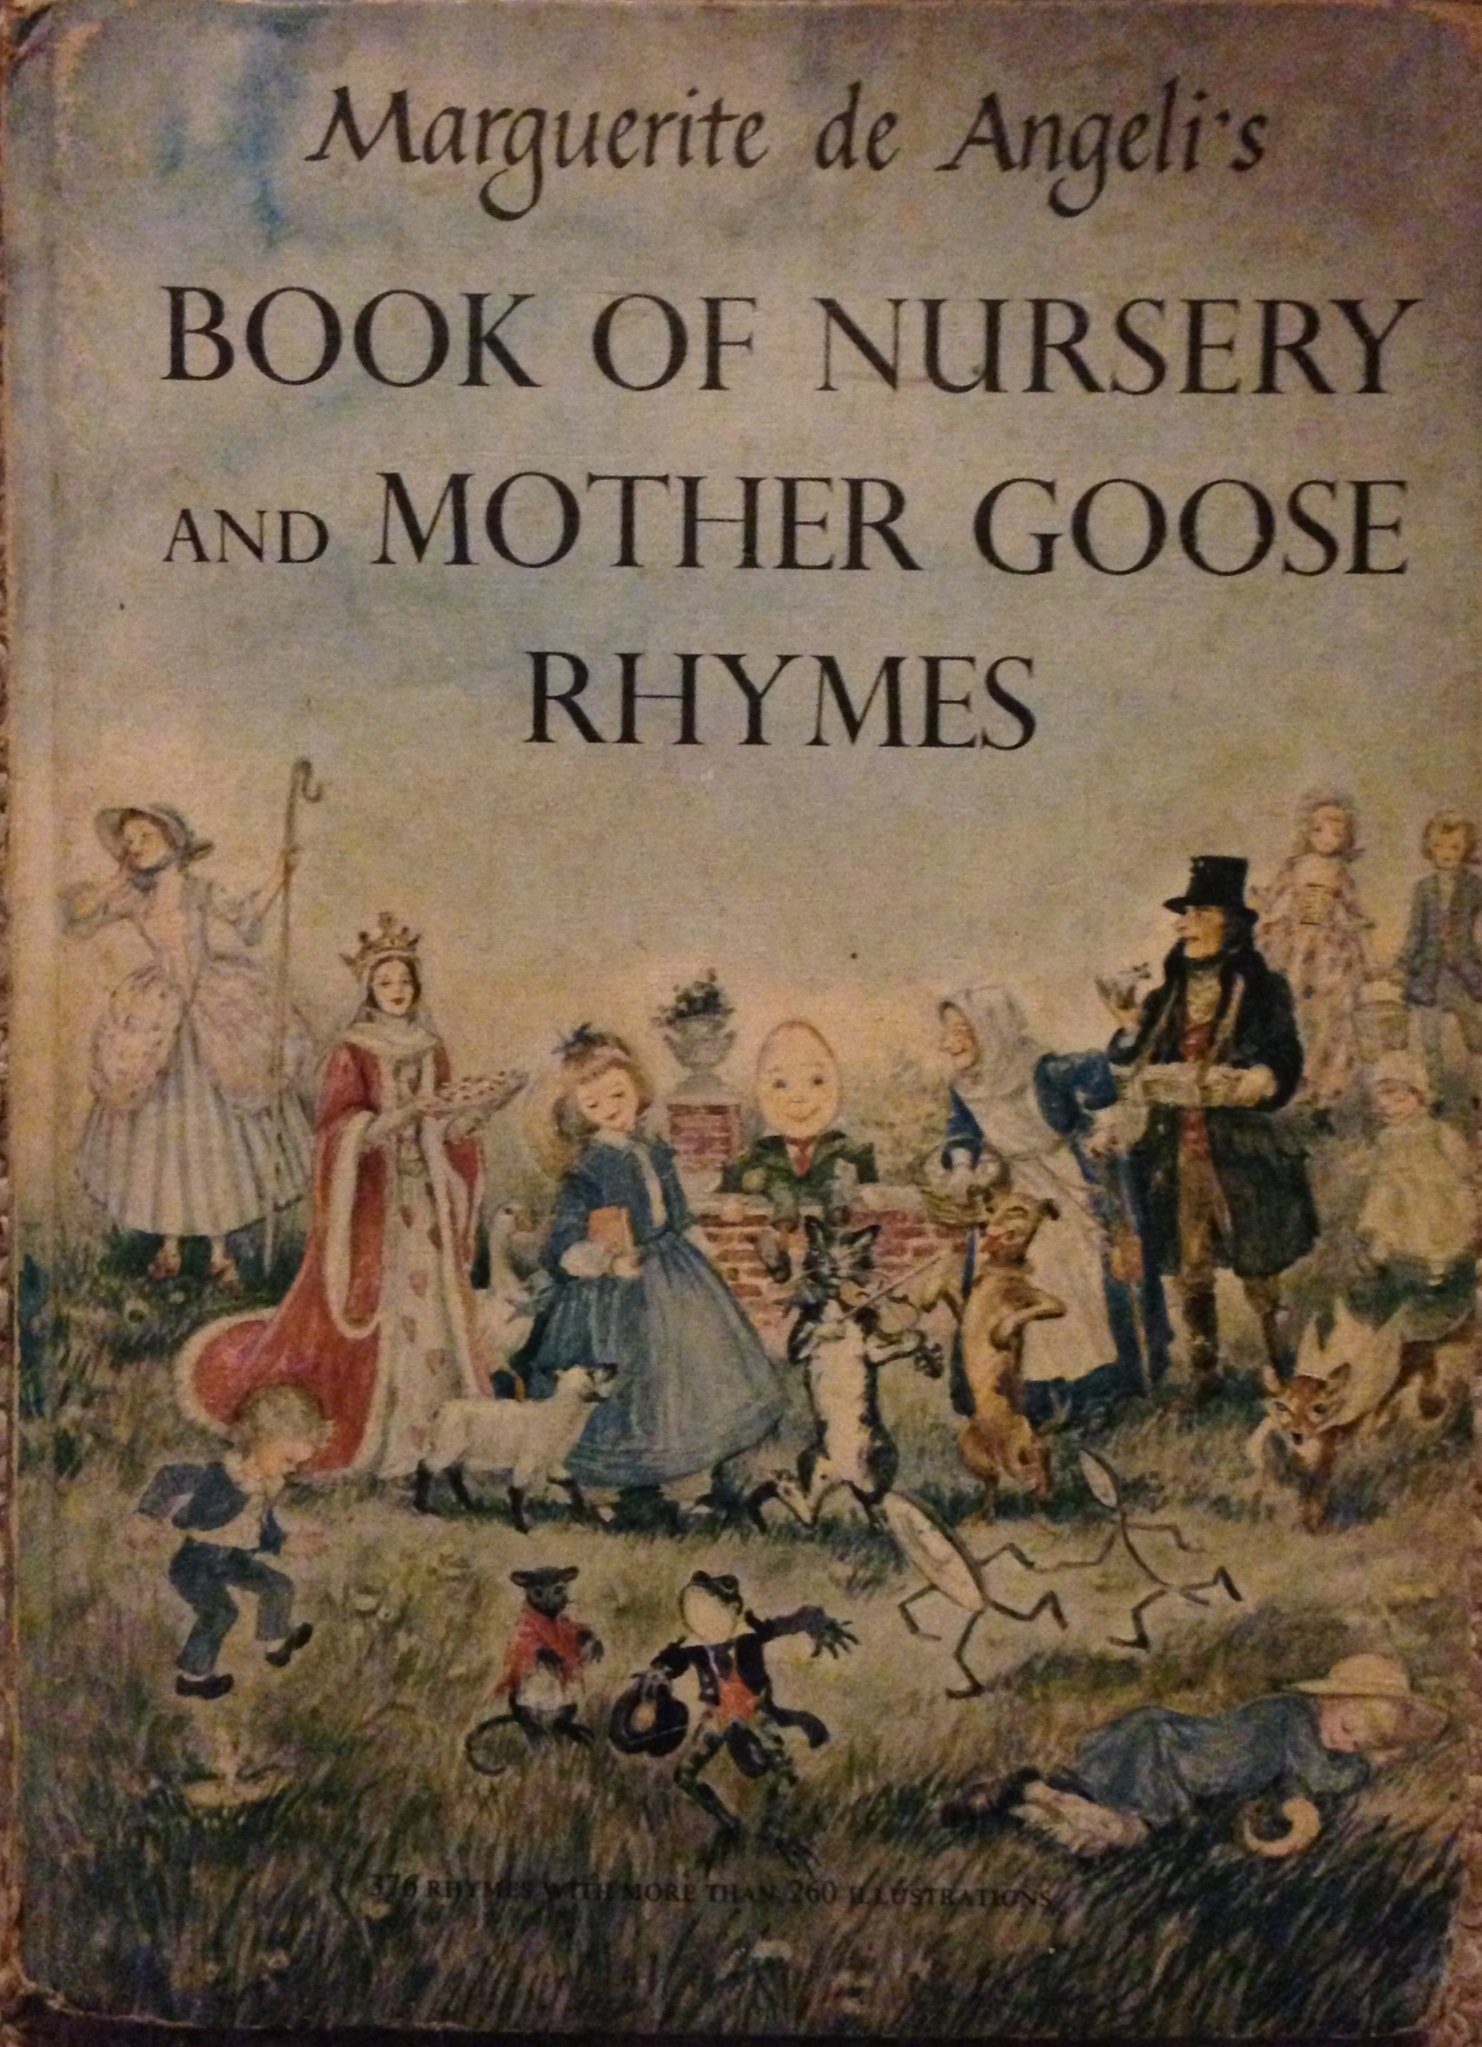 Book of Nursery and Mother Goose Rhymes: Marguerite De Angeli ...